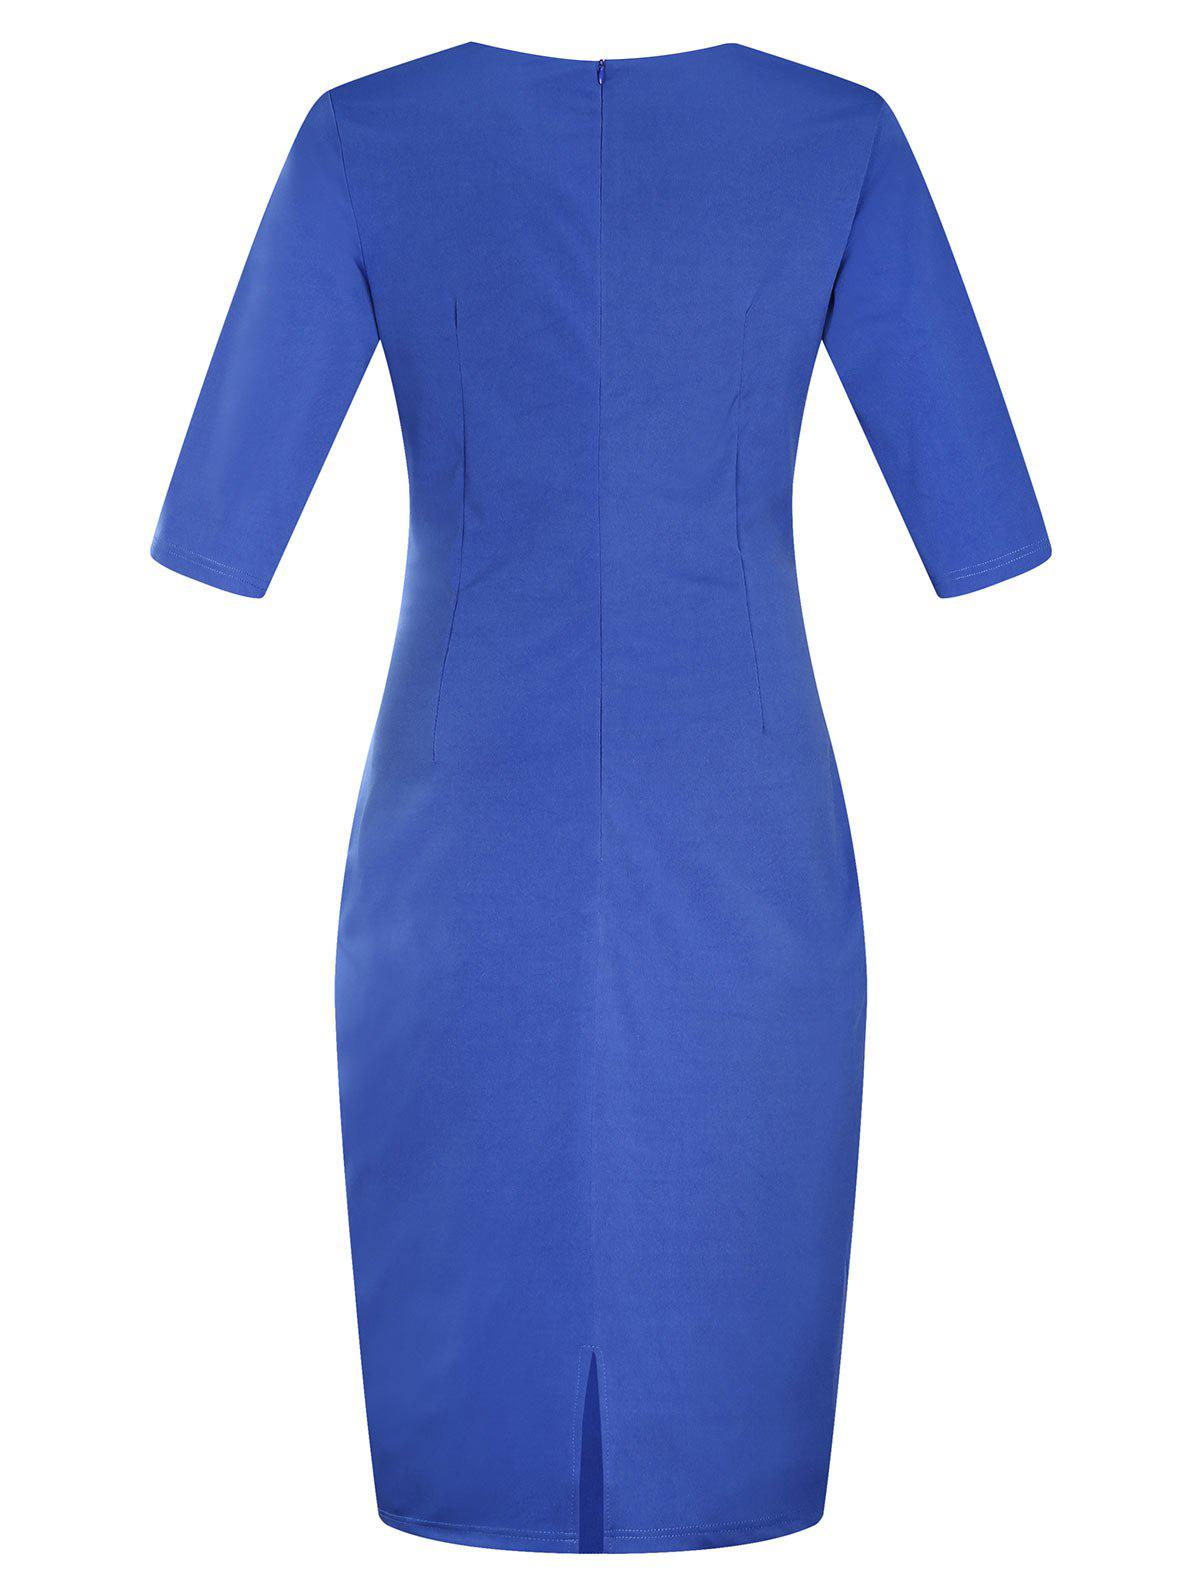 Plus Size Embellished Ruched Modest Work Fitted Dress - BLUE 4XL